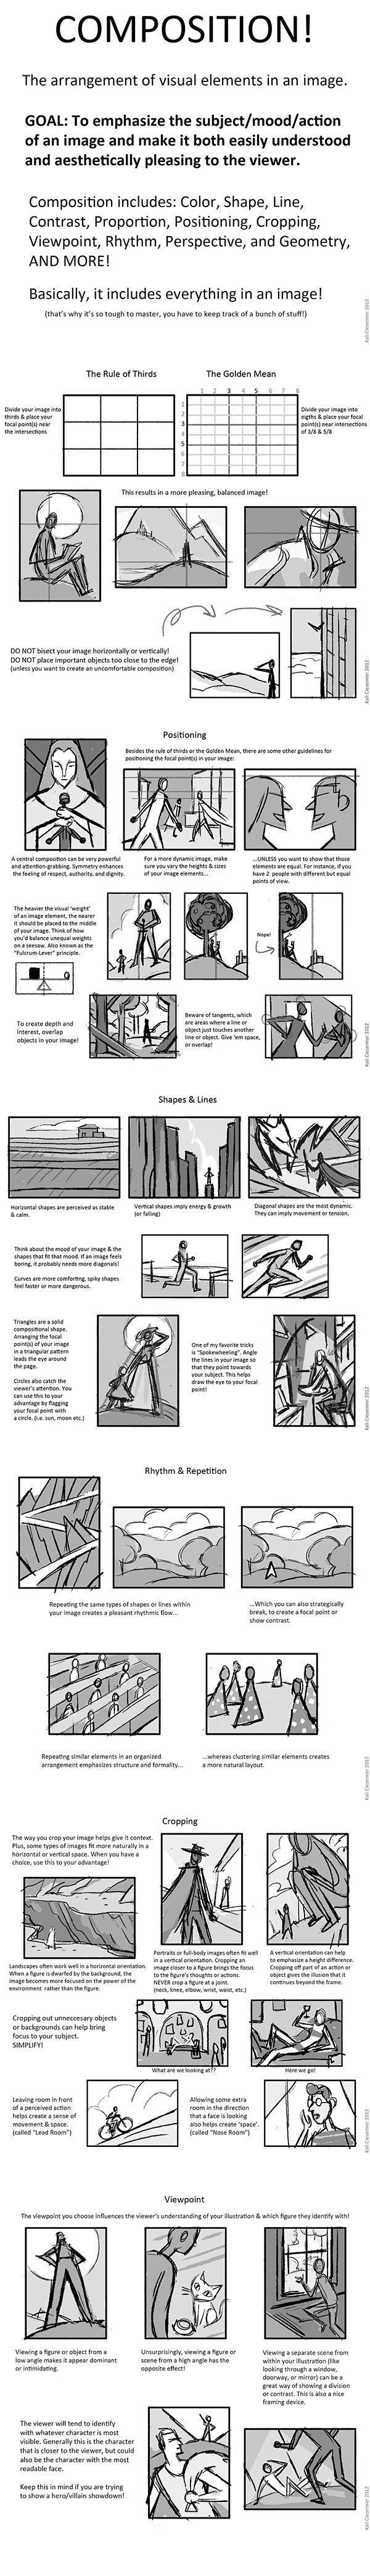 Great reference infographic for composition! #teachingart #composition #infographic #arteducation